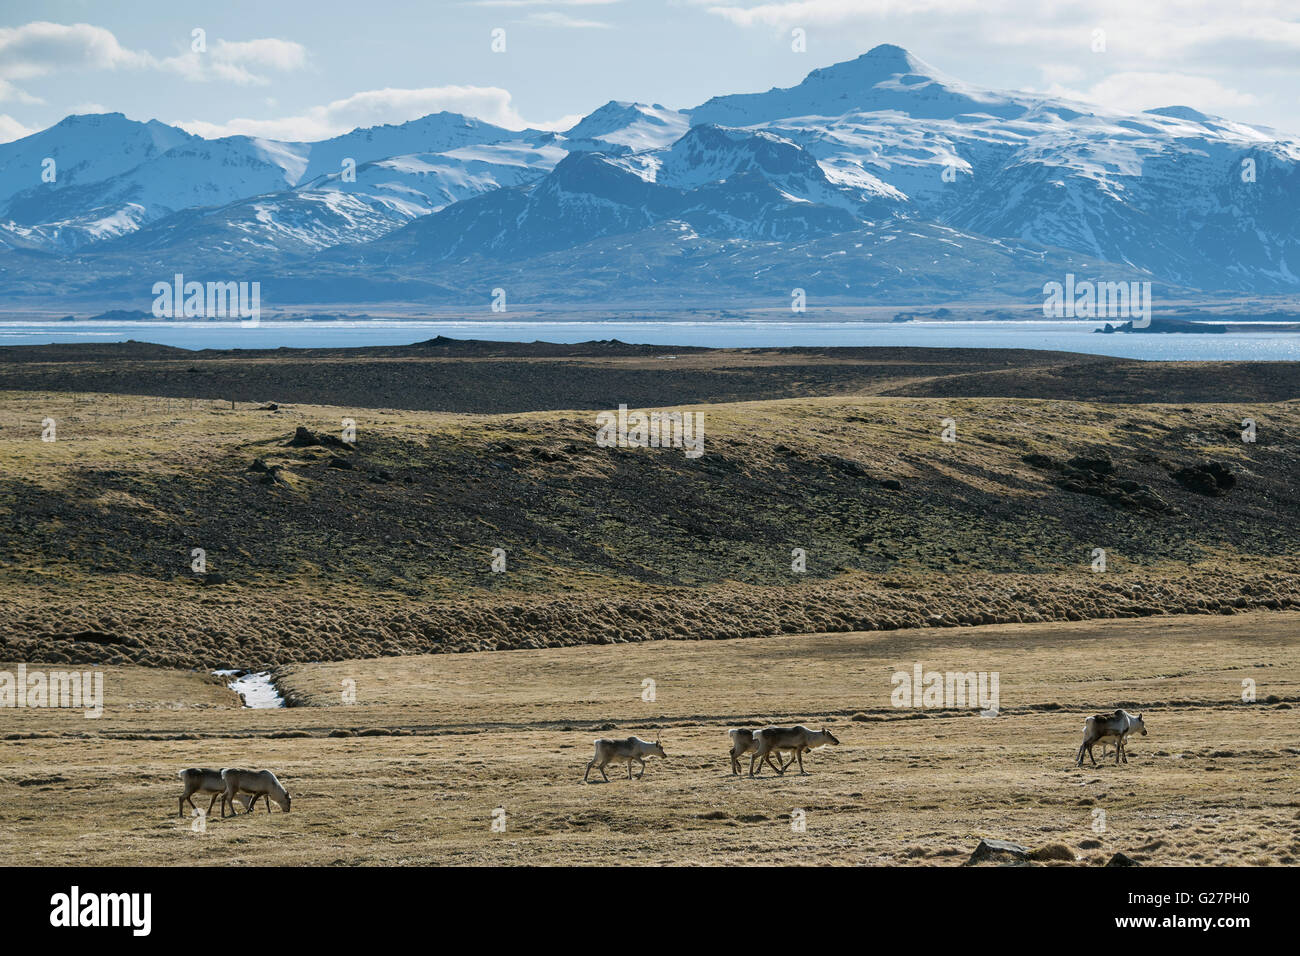 Reindeer (Rangifer tarandus) in front of mountains, East Fjords, Iceland - Stock Image